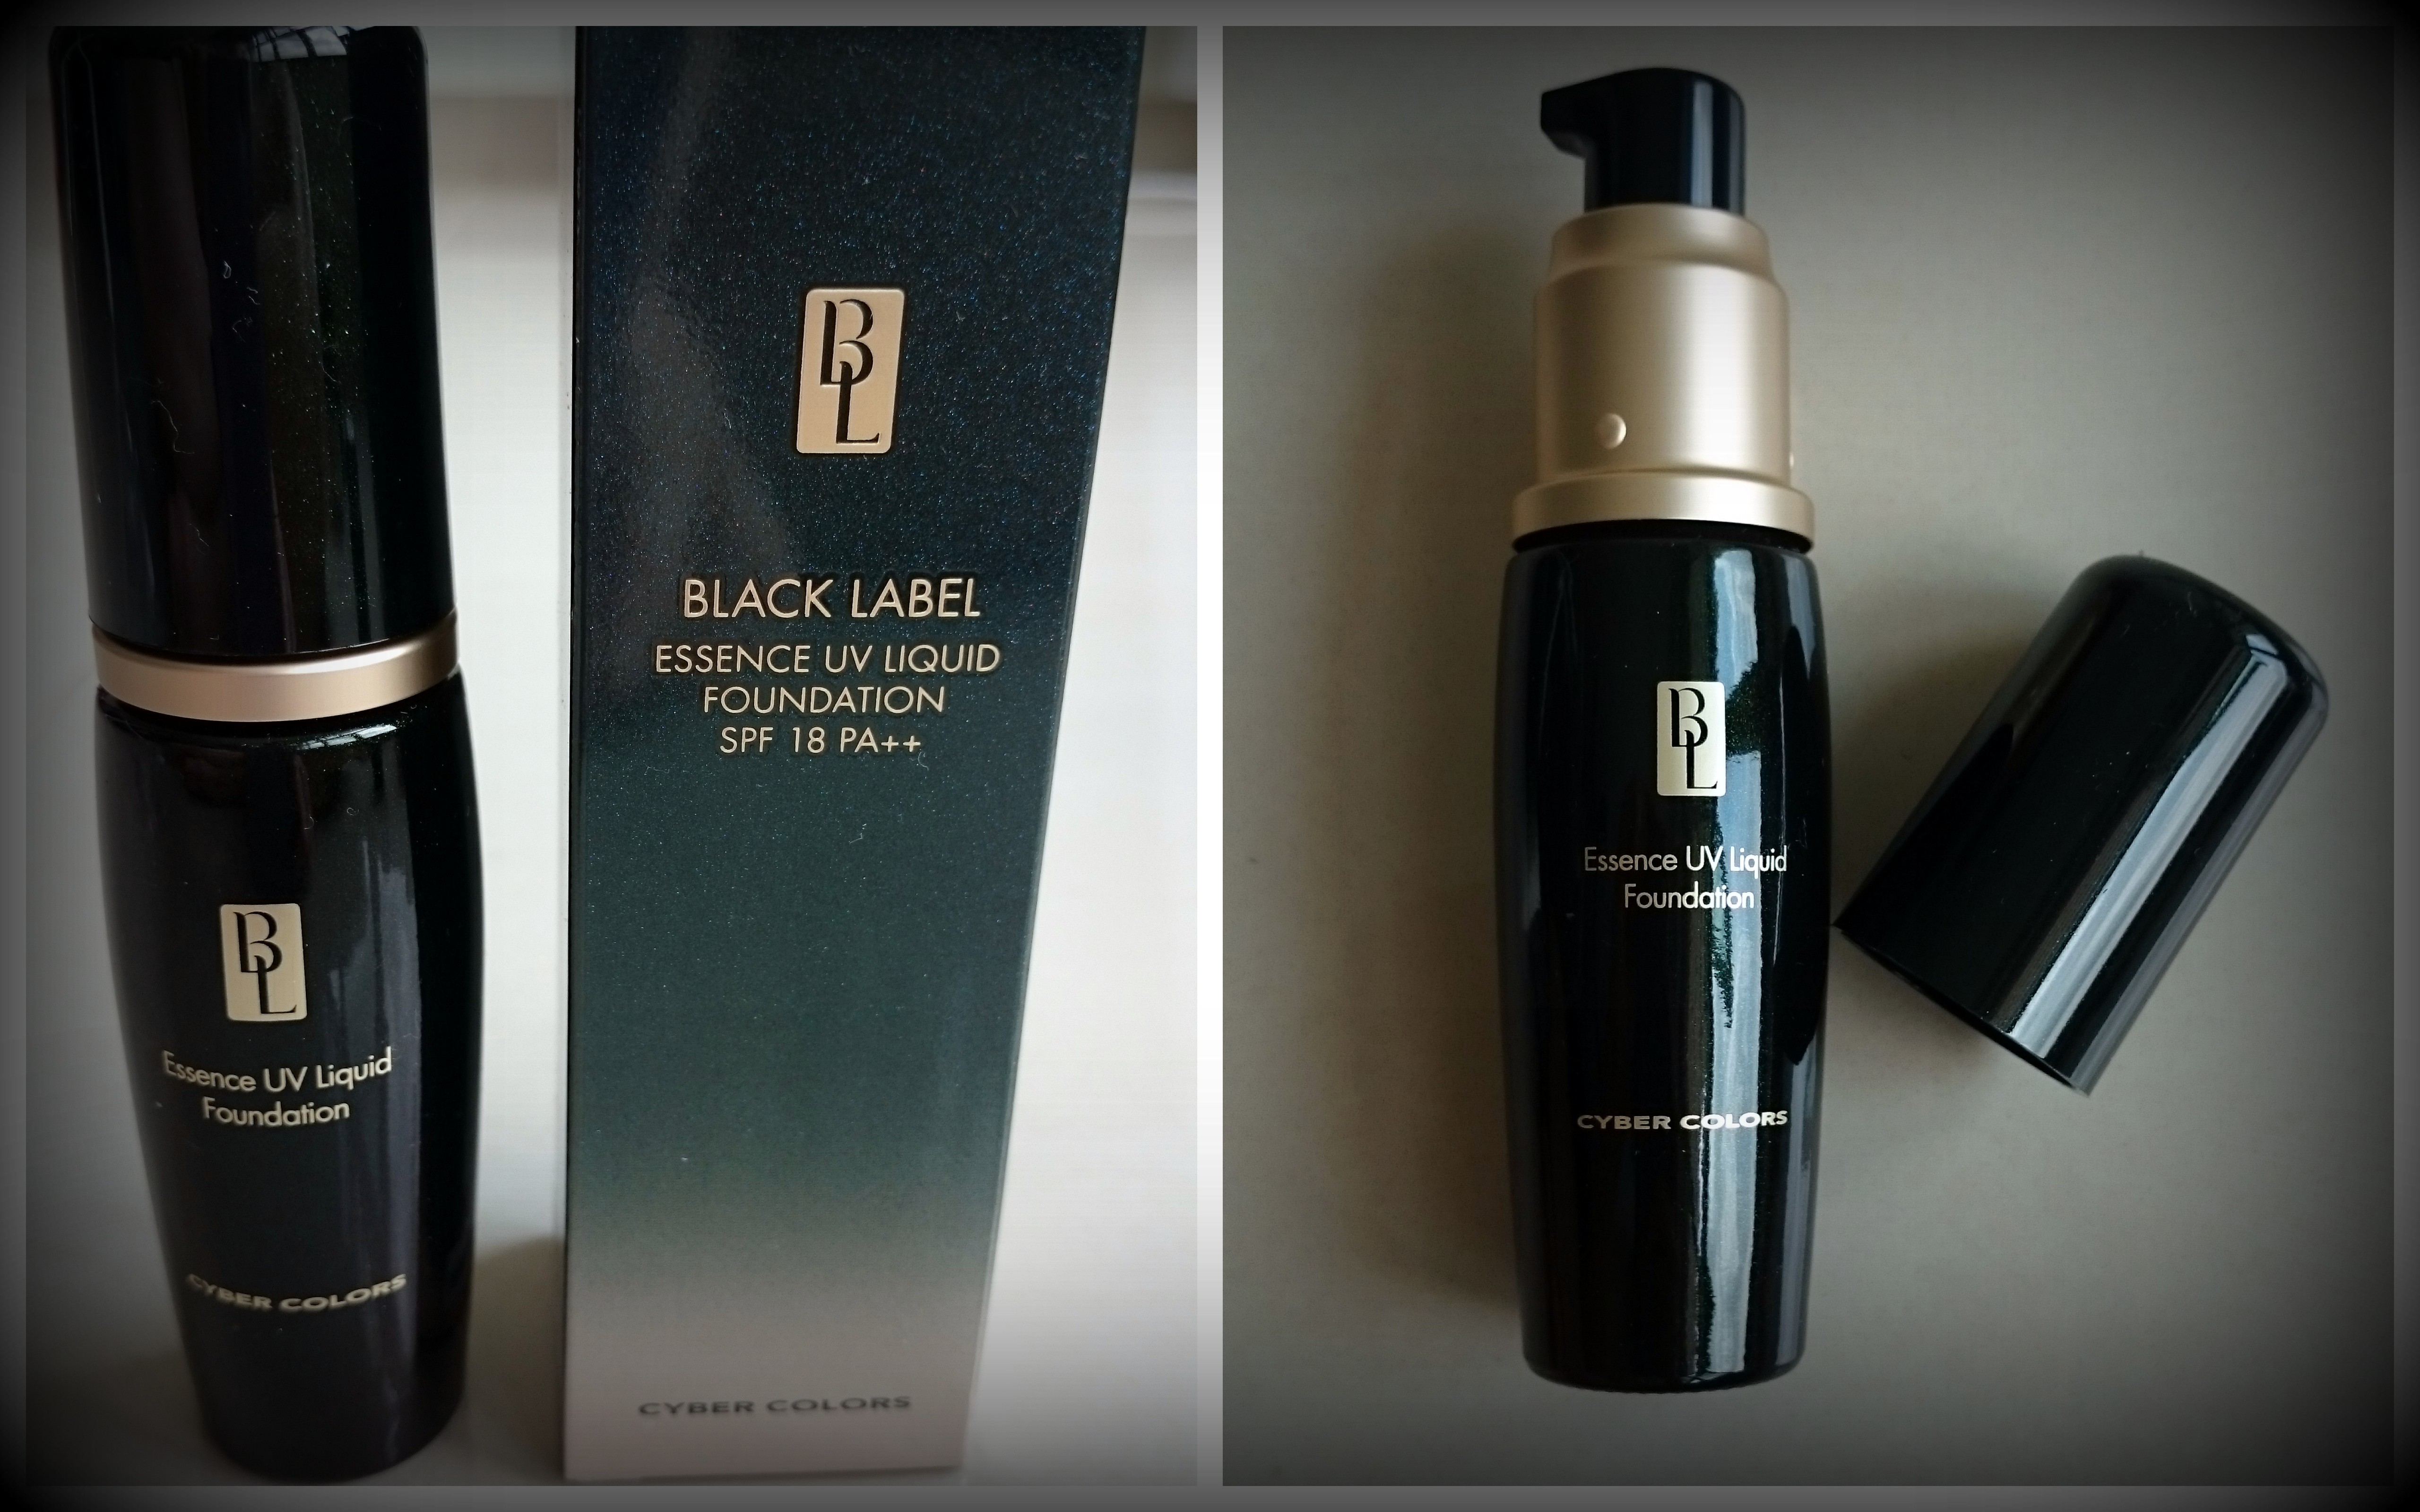 putting the cyber colors black label foundation series to the test